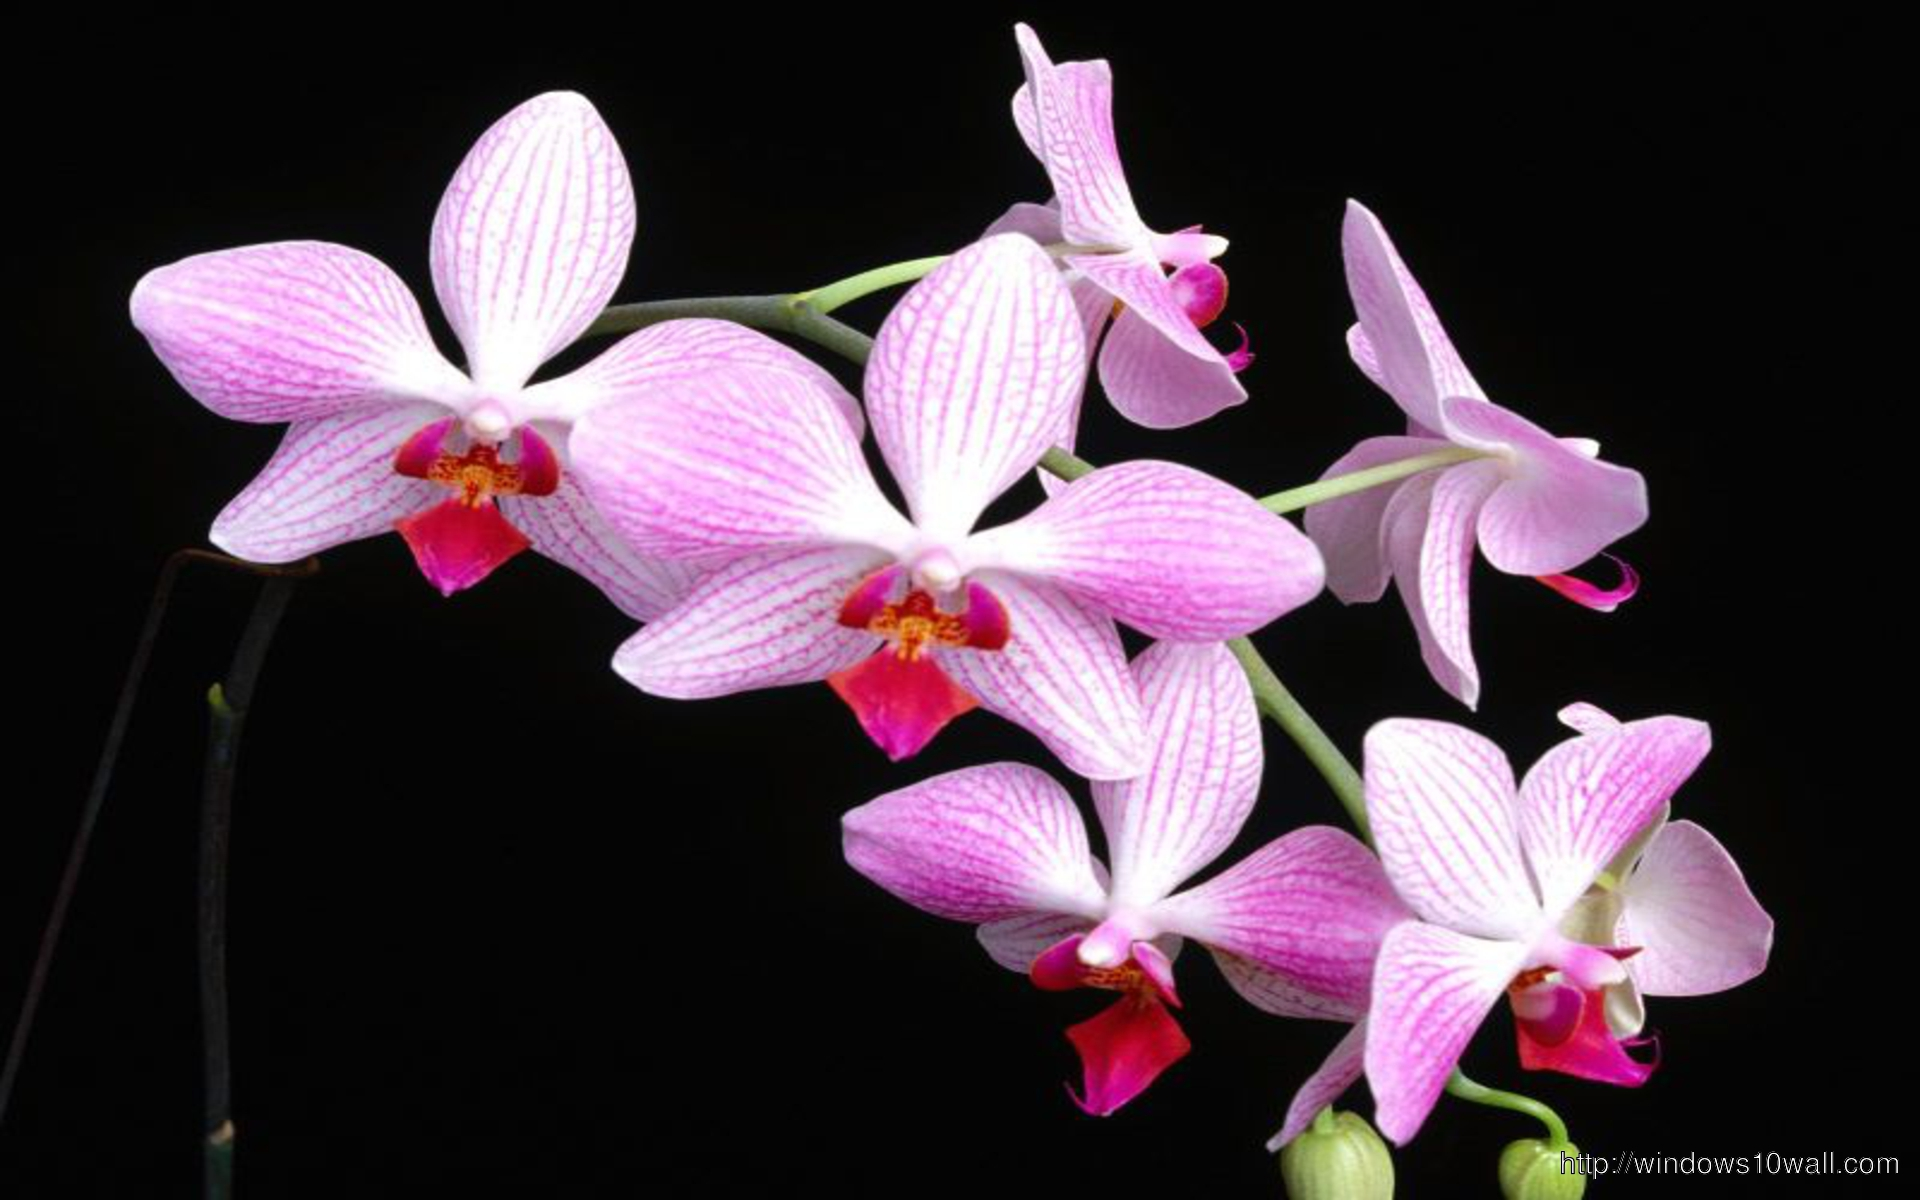 Cliserpudo beautiful orchid flower wallpaper images beautiful orchid flower wallpaper izmirmasajfo